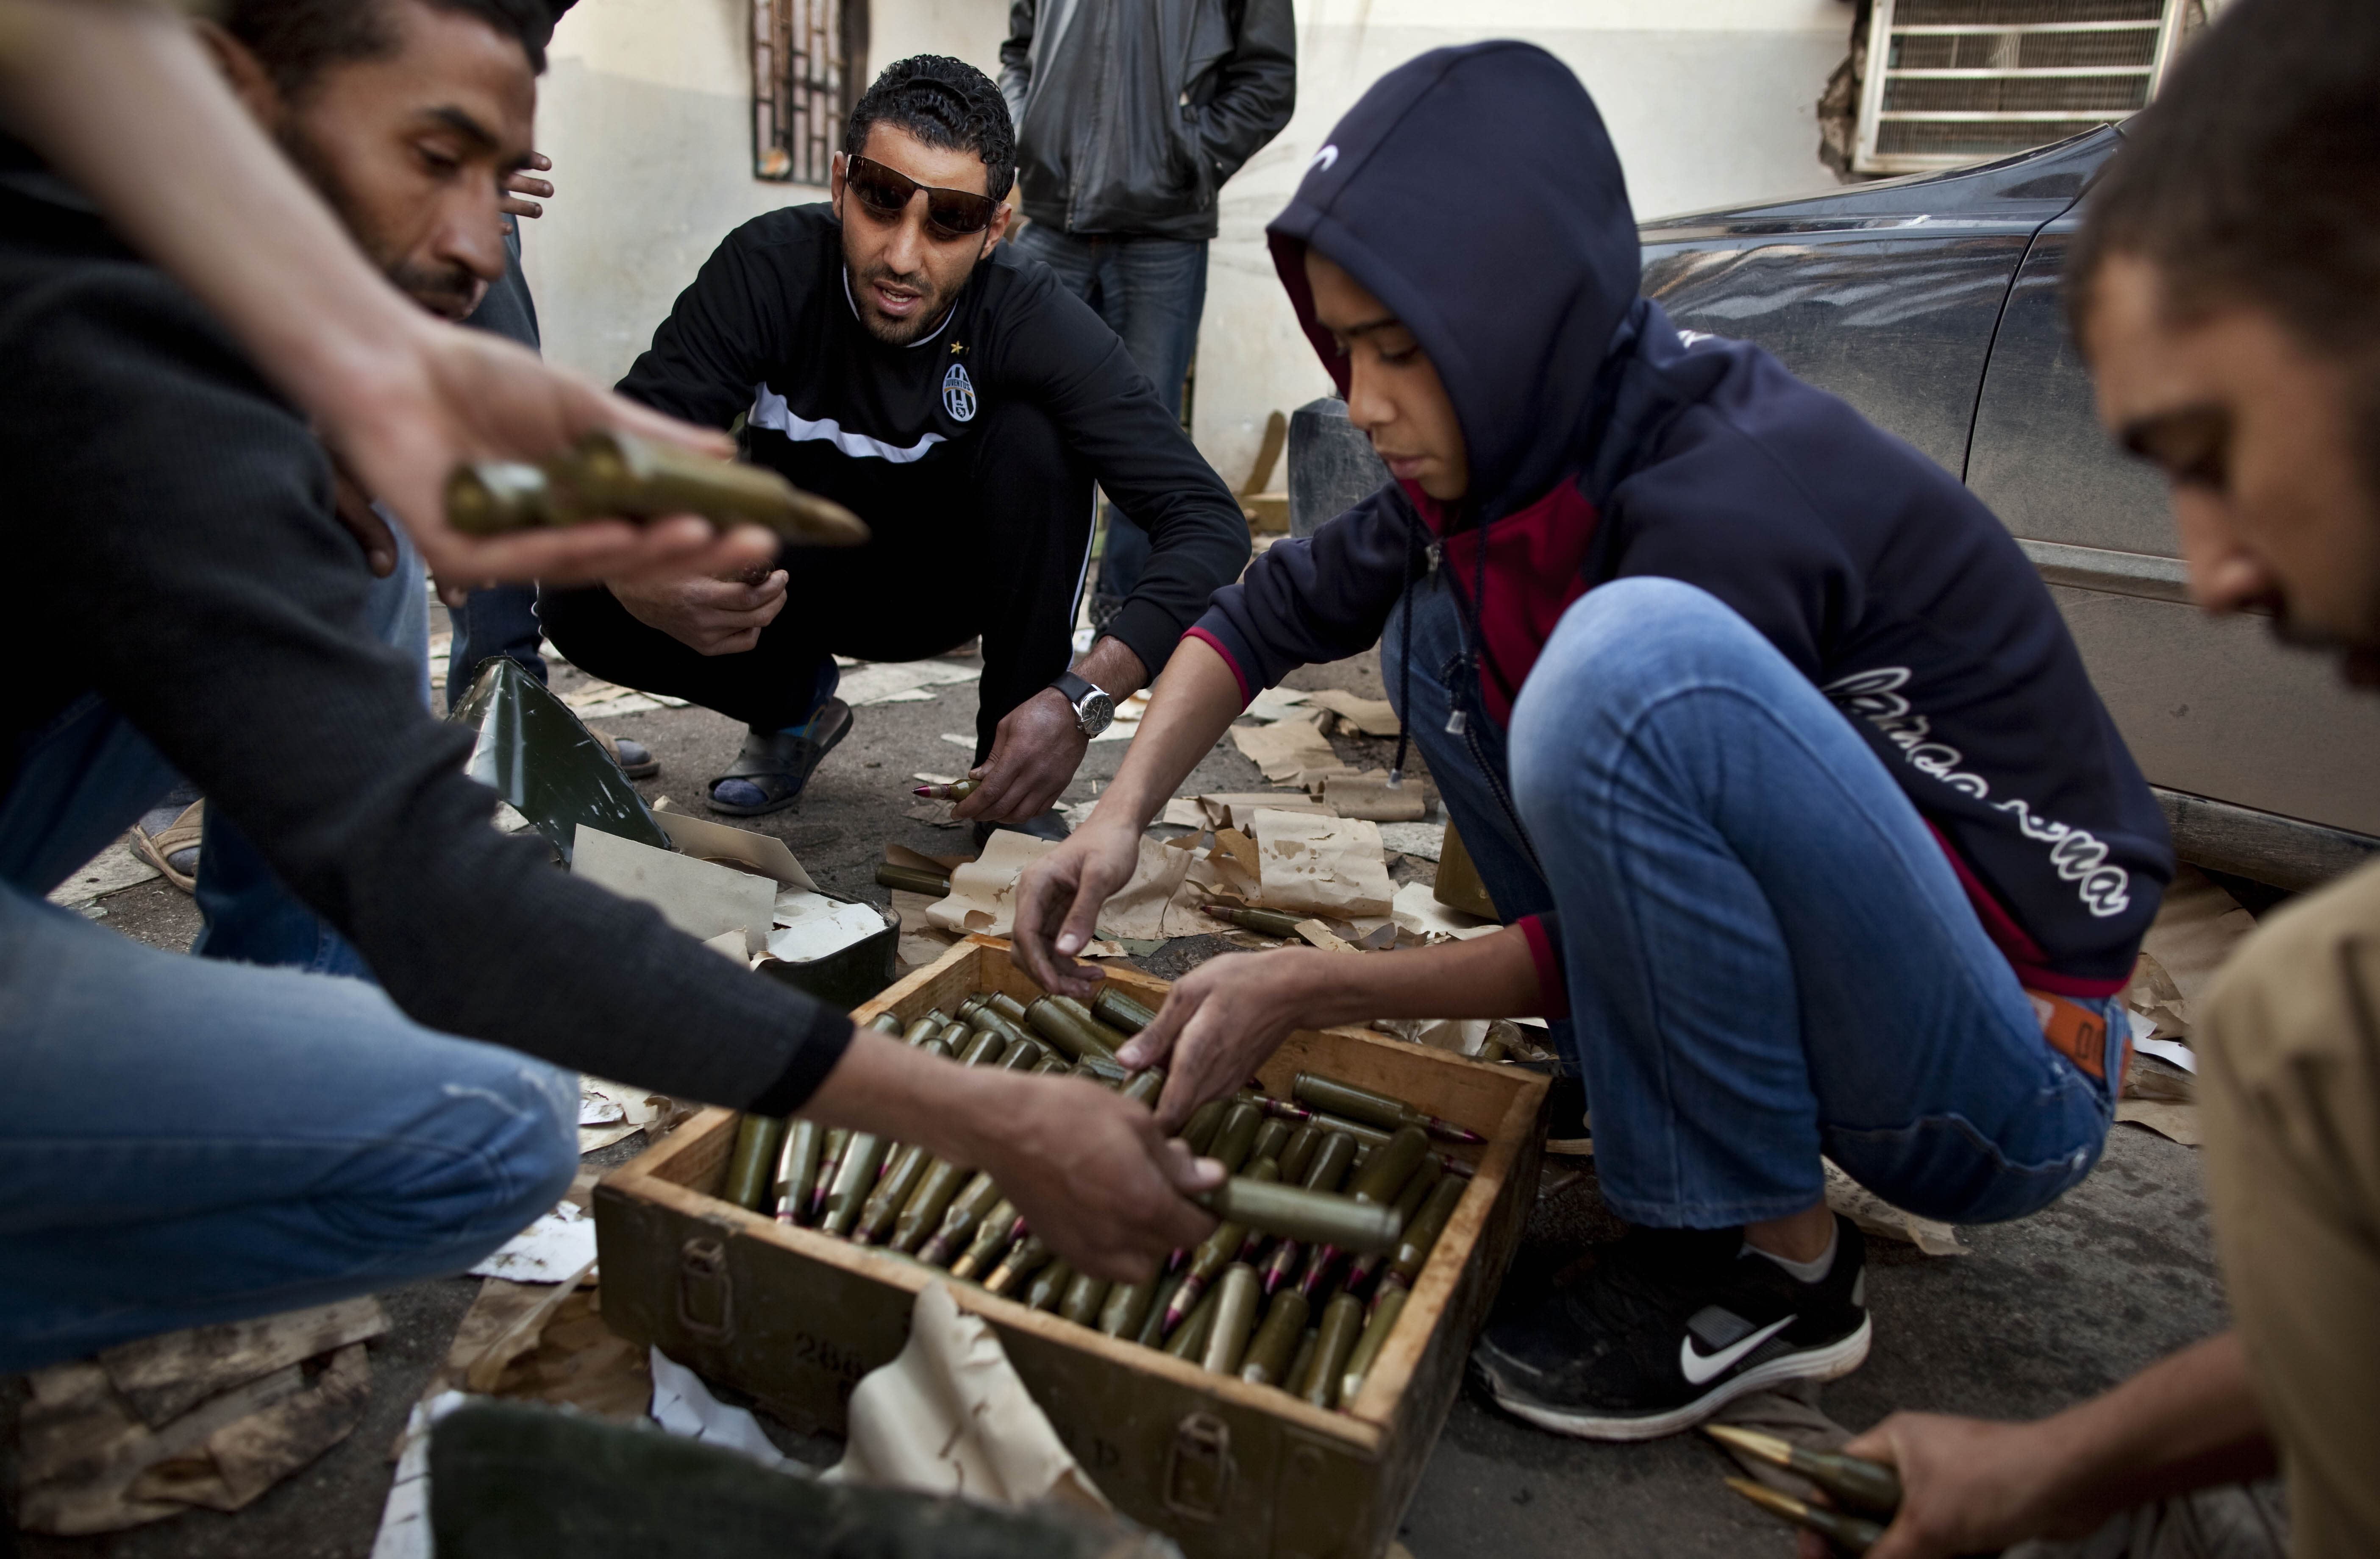 FILE - In this Monday, Feb. 28, 2011 file photo, Libyan militia members who are part of the forces against Libyan leader Moammar Gadhafi organize their munitions at a military base in Benghazi, eastern Libya. At the heart of the Libyan capital, the open-air Fish Market was once where residents went to buy everything from meat and seafood to clothes and pets. Now it's Tripoli's biggest arms market, with tables displaying pistols and assault rifles. Ask a vendor, and he can pull out bigger machine guns to sell for thousands of dollars. (AP Photo/Kevin Frayer, File)